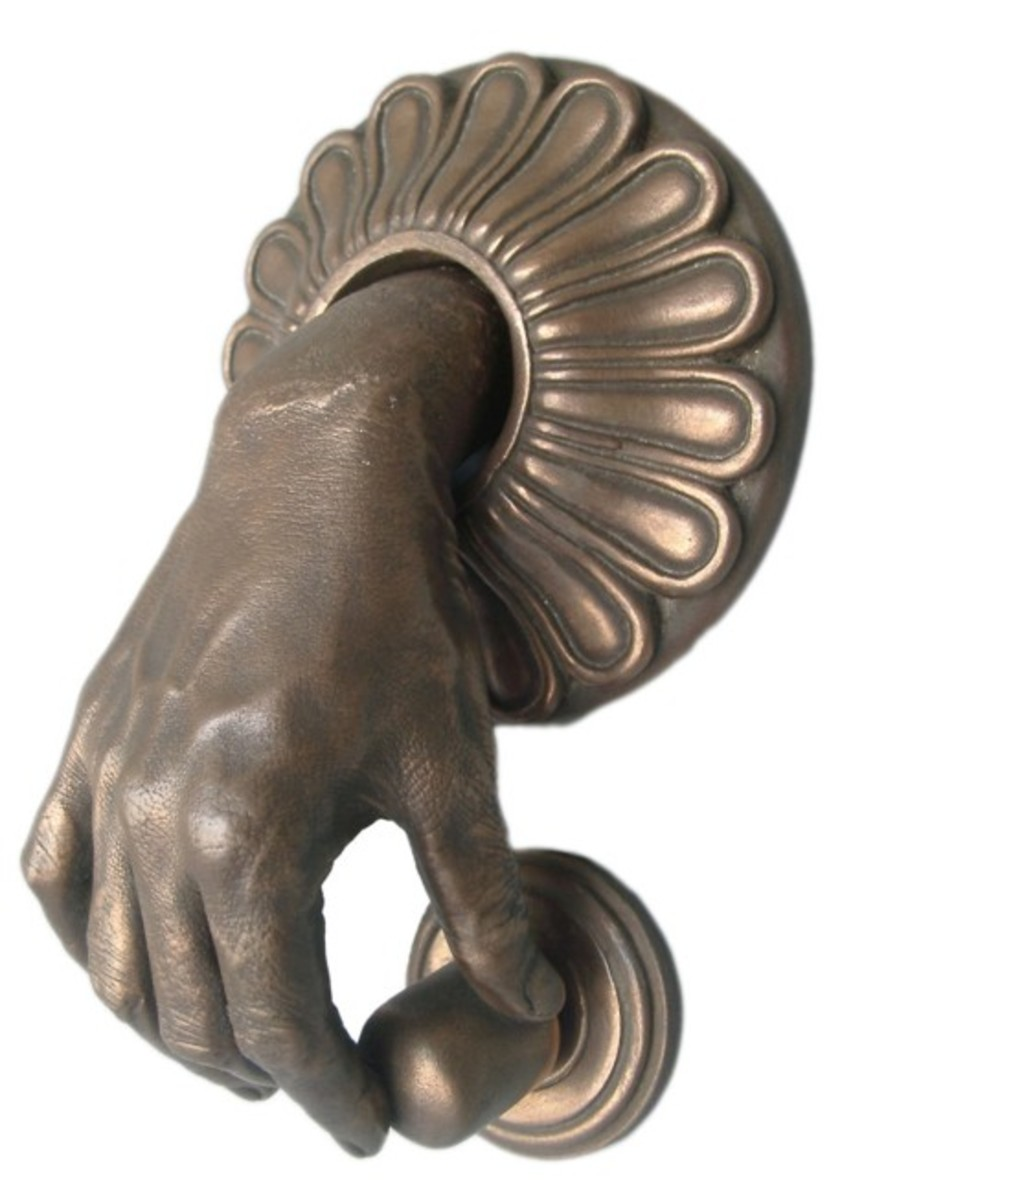 My Weird And Wonderful Door Knockers Hubpages